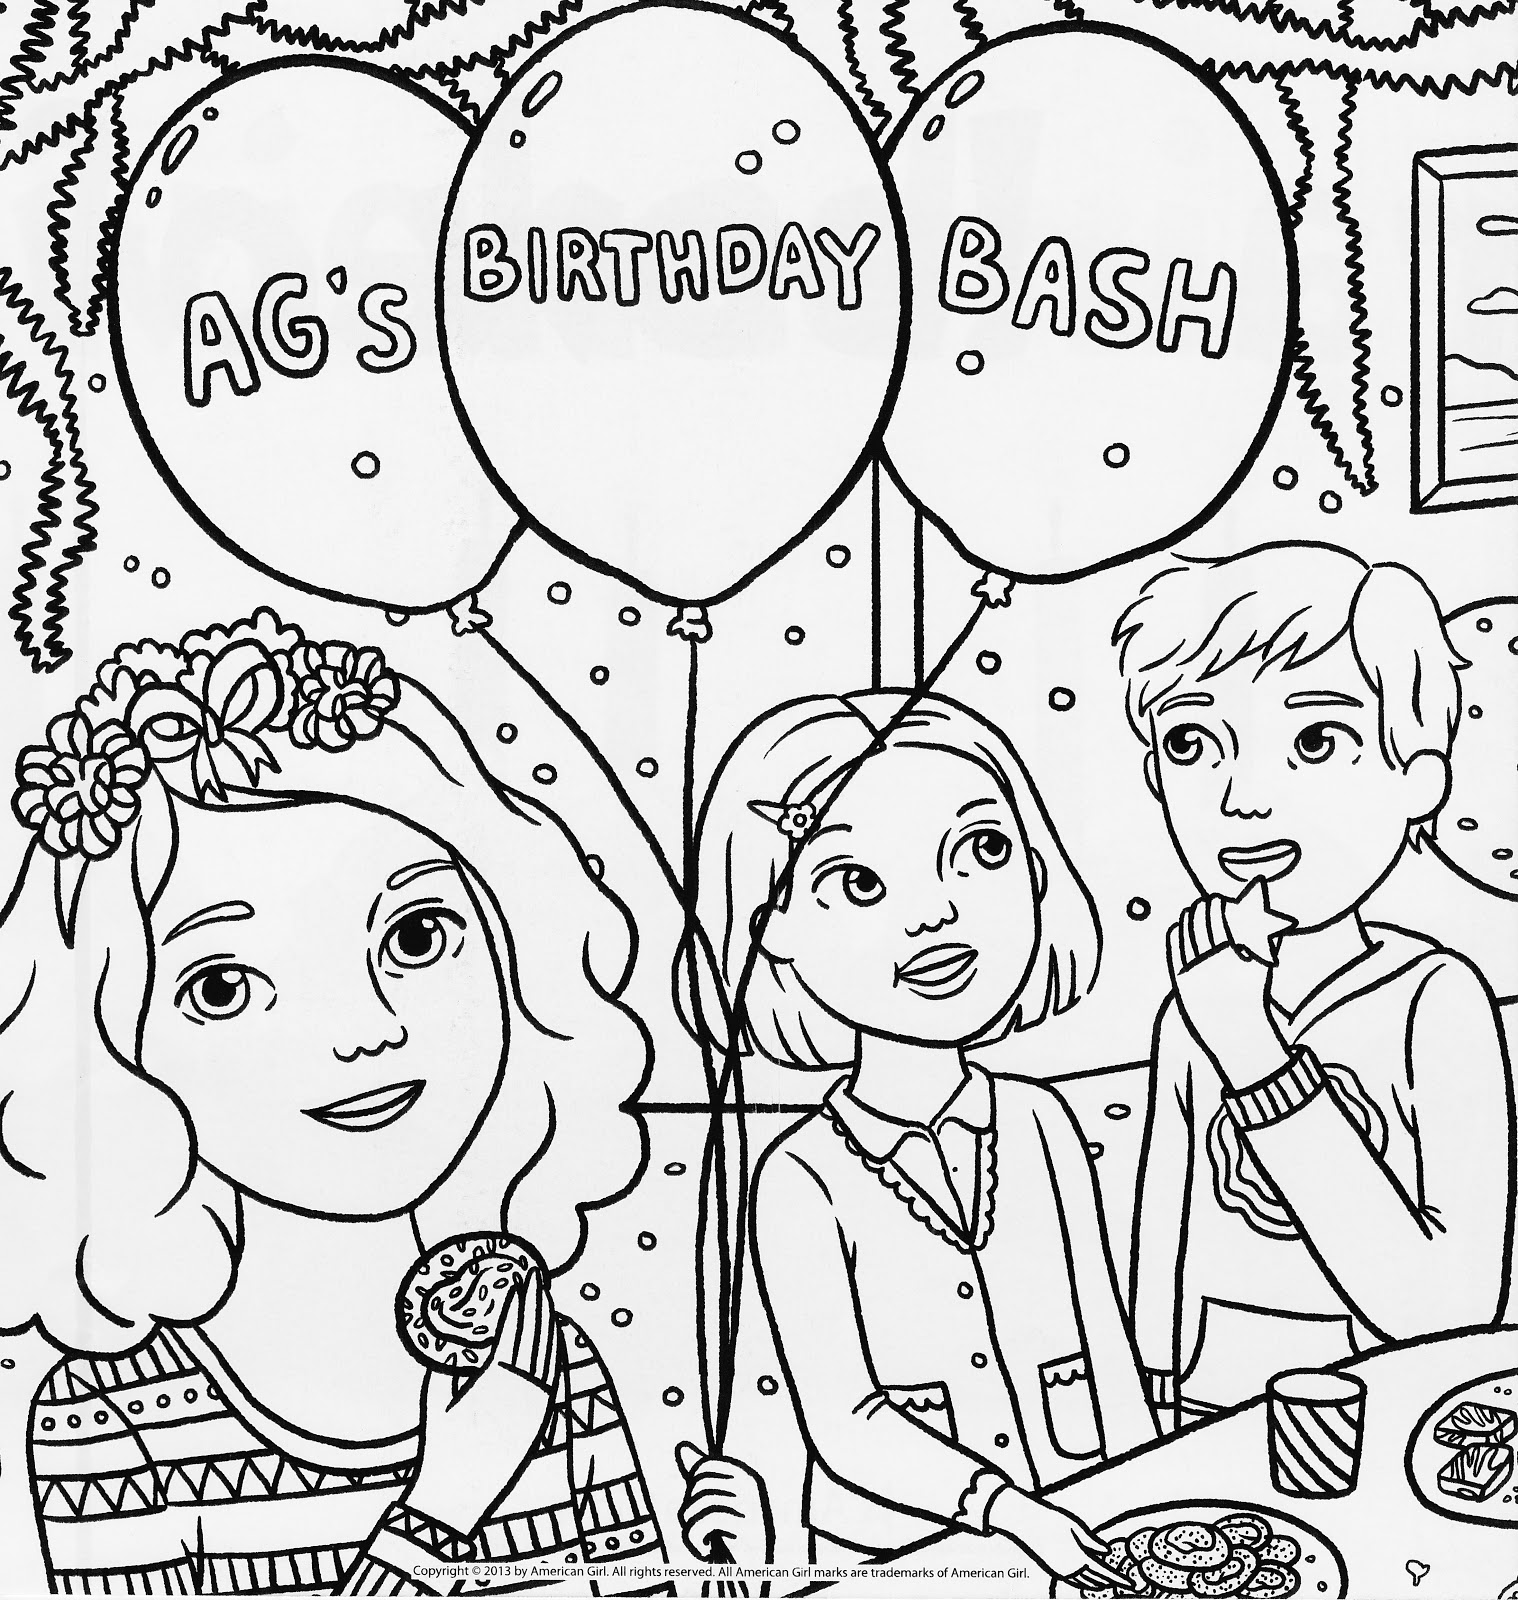 j american girl coloring pages - photo #34